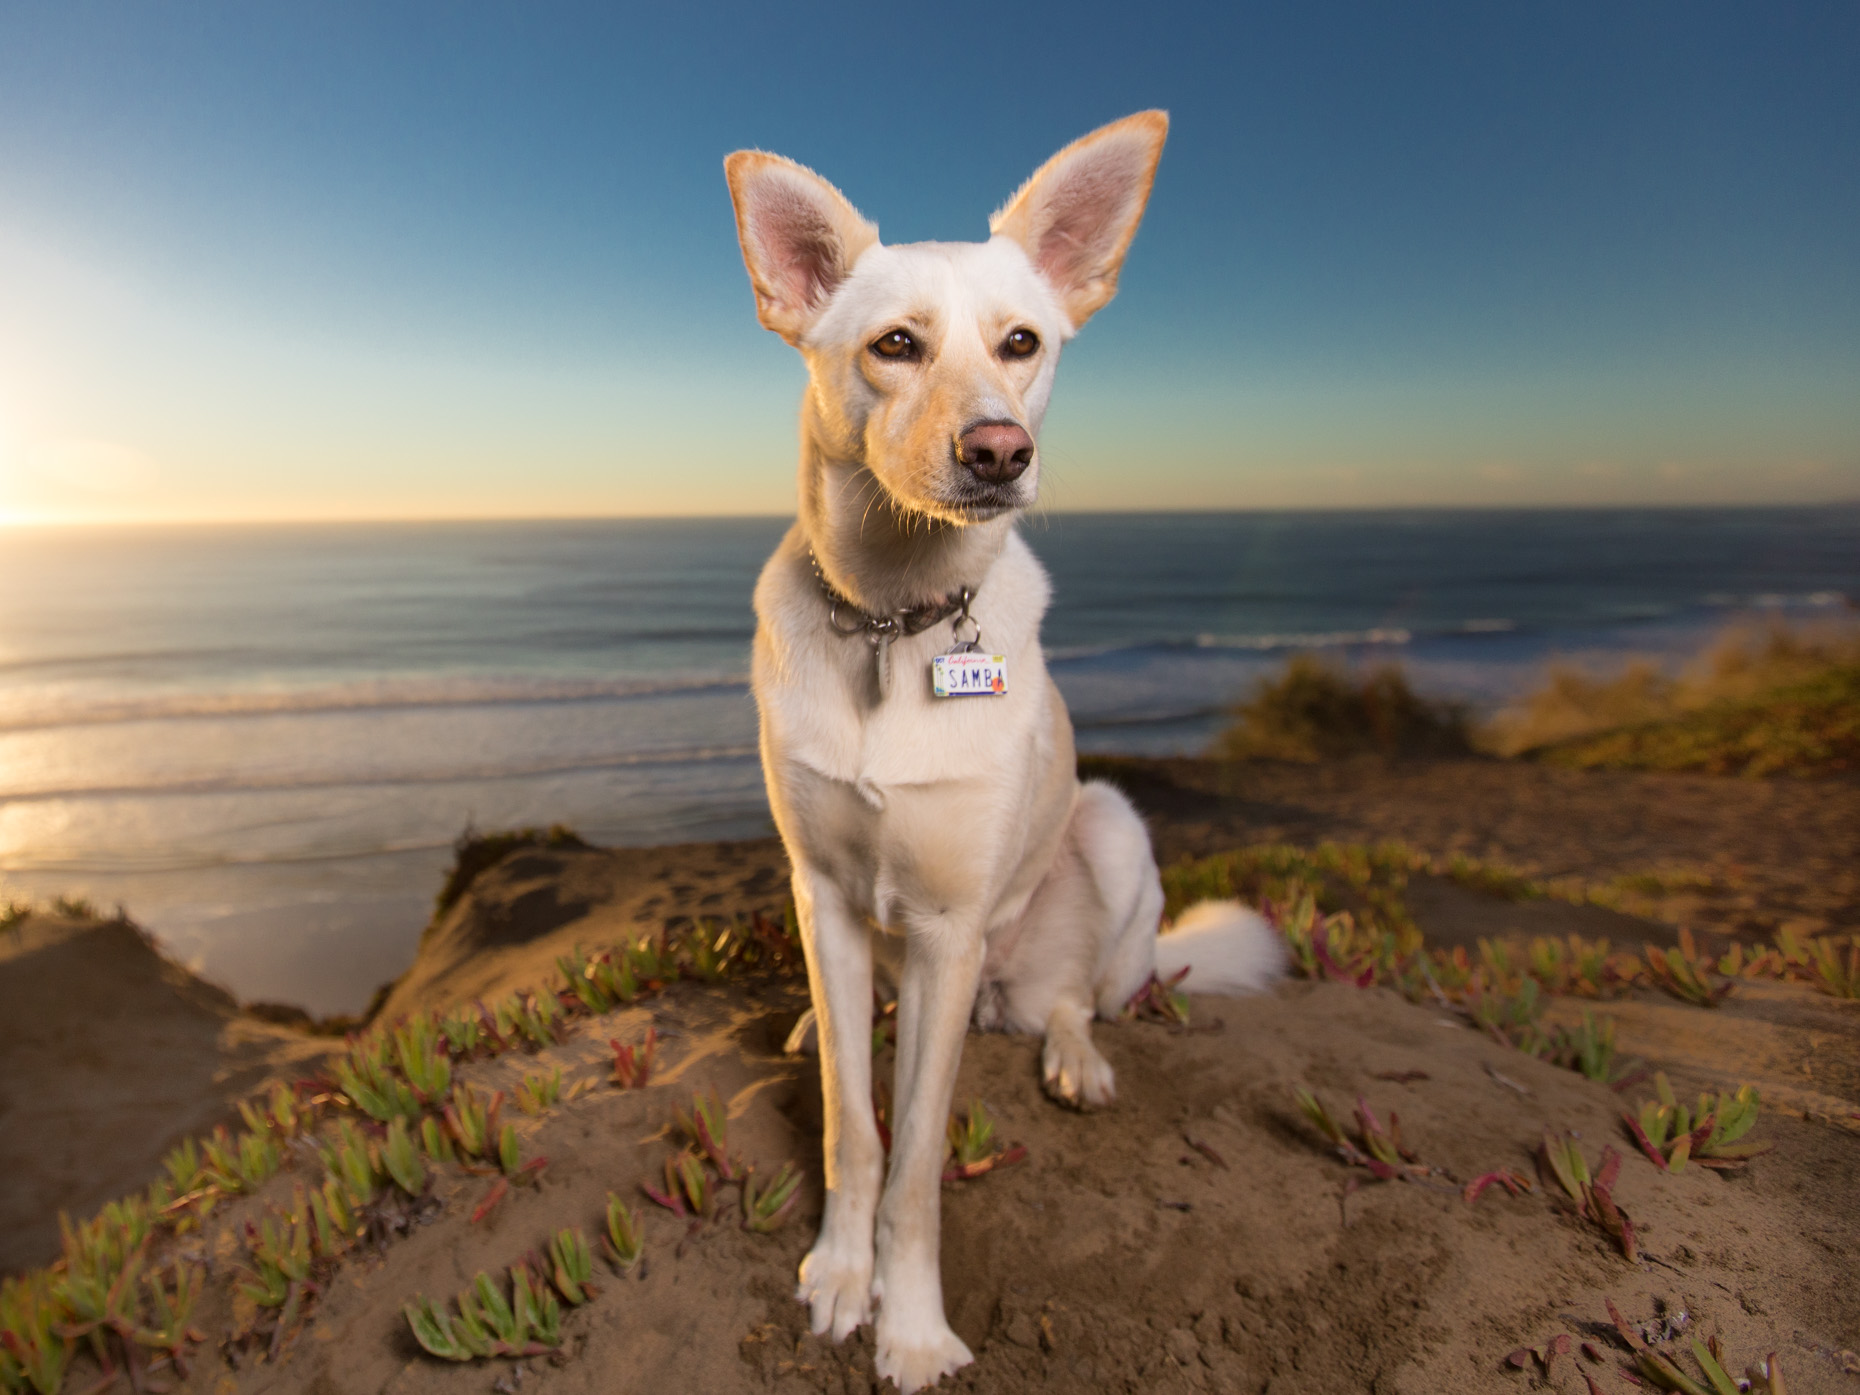 Pet Photography | White Dog and Beach Sunset by Mark Rogers